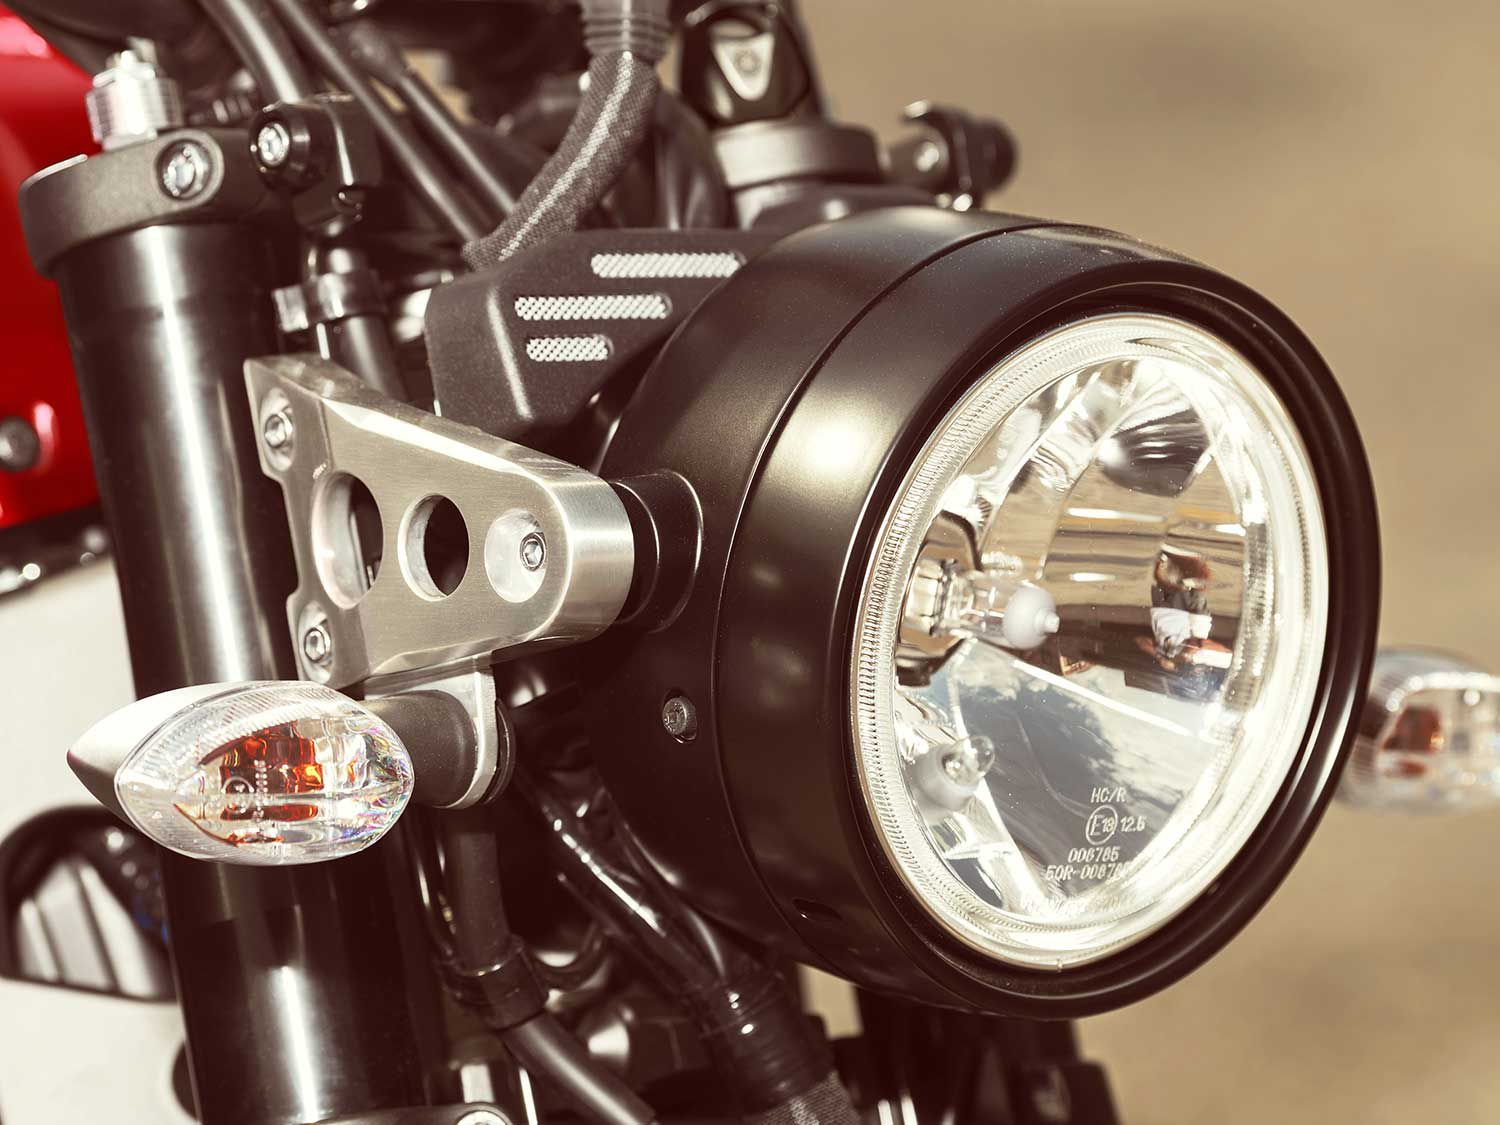 The round headlight with aluminum ears sports the classic look of an old XS-series Yamaha.